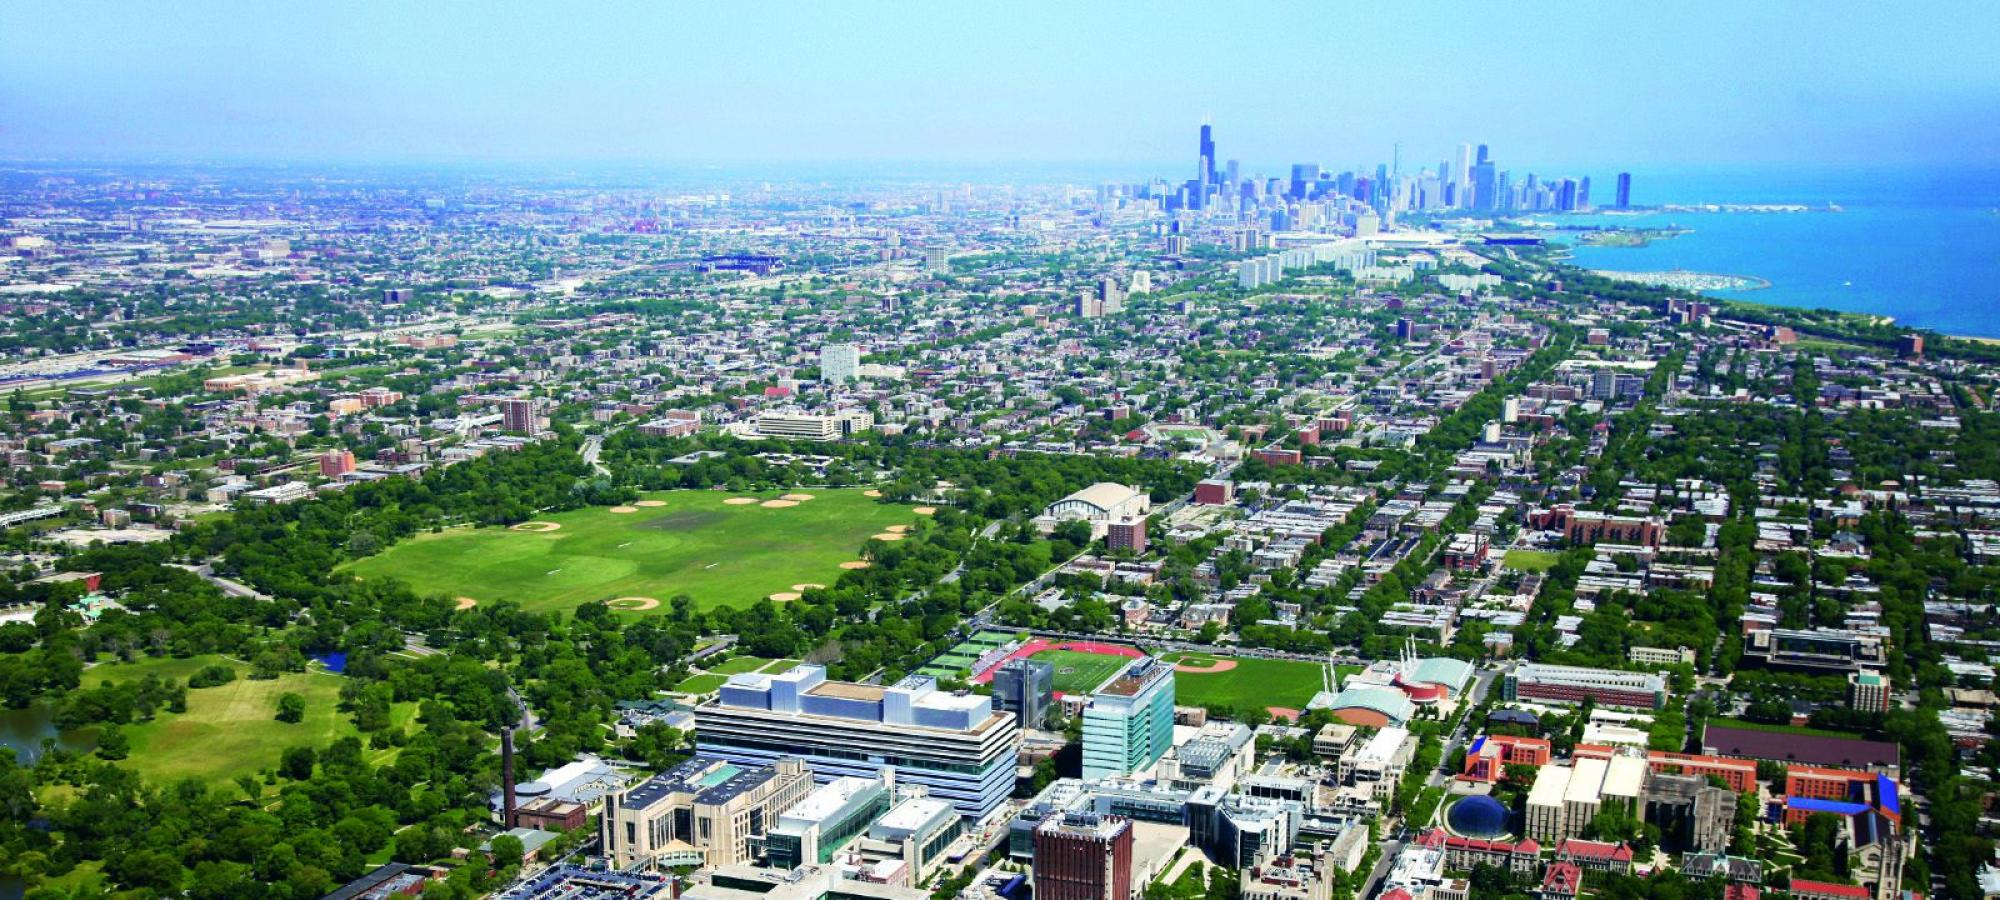 Looking north from the UChicago Campus toward downtown Chicago.